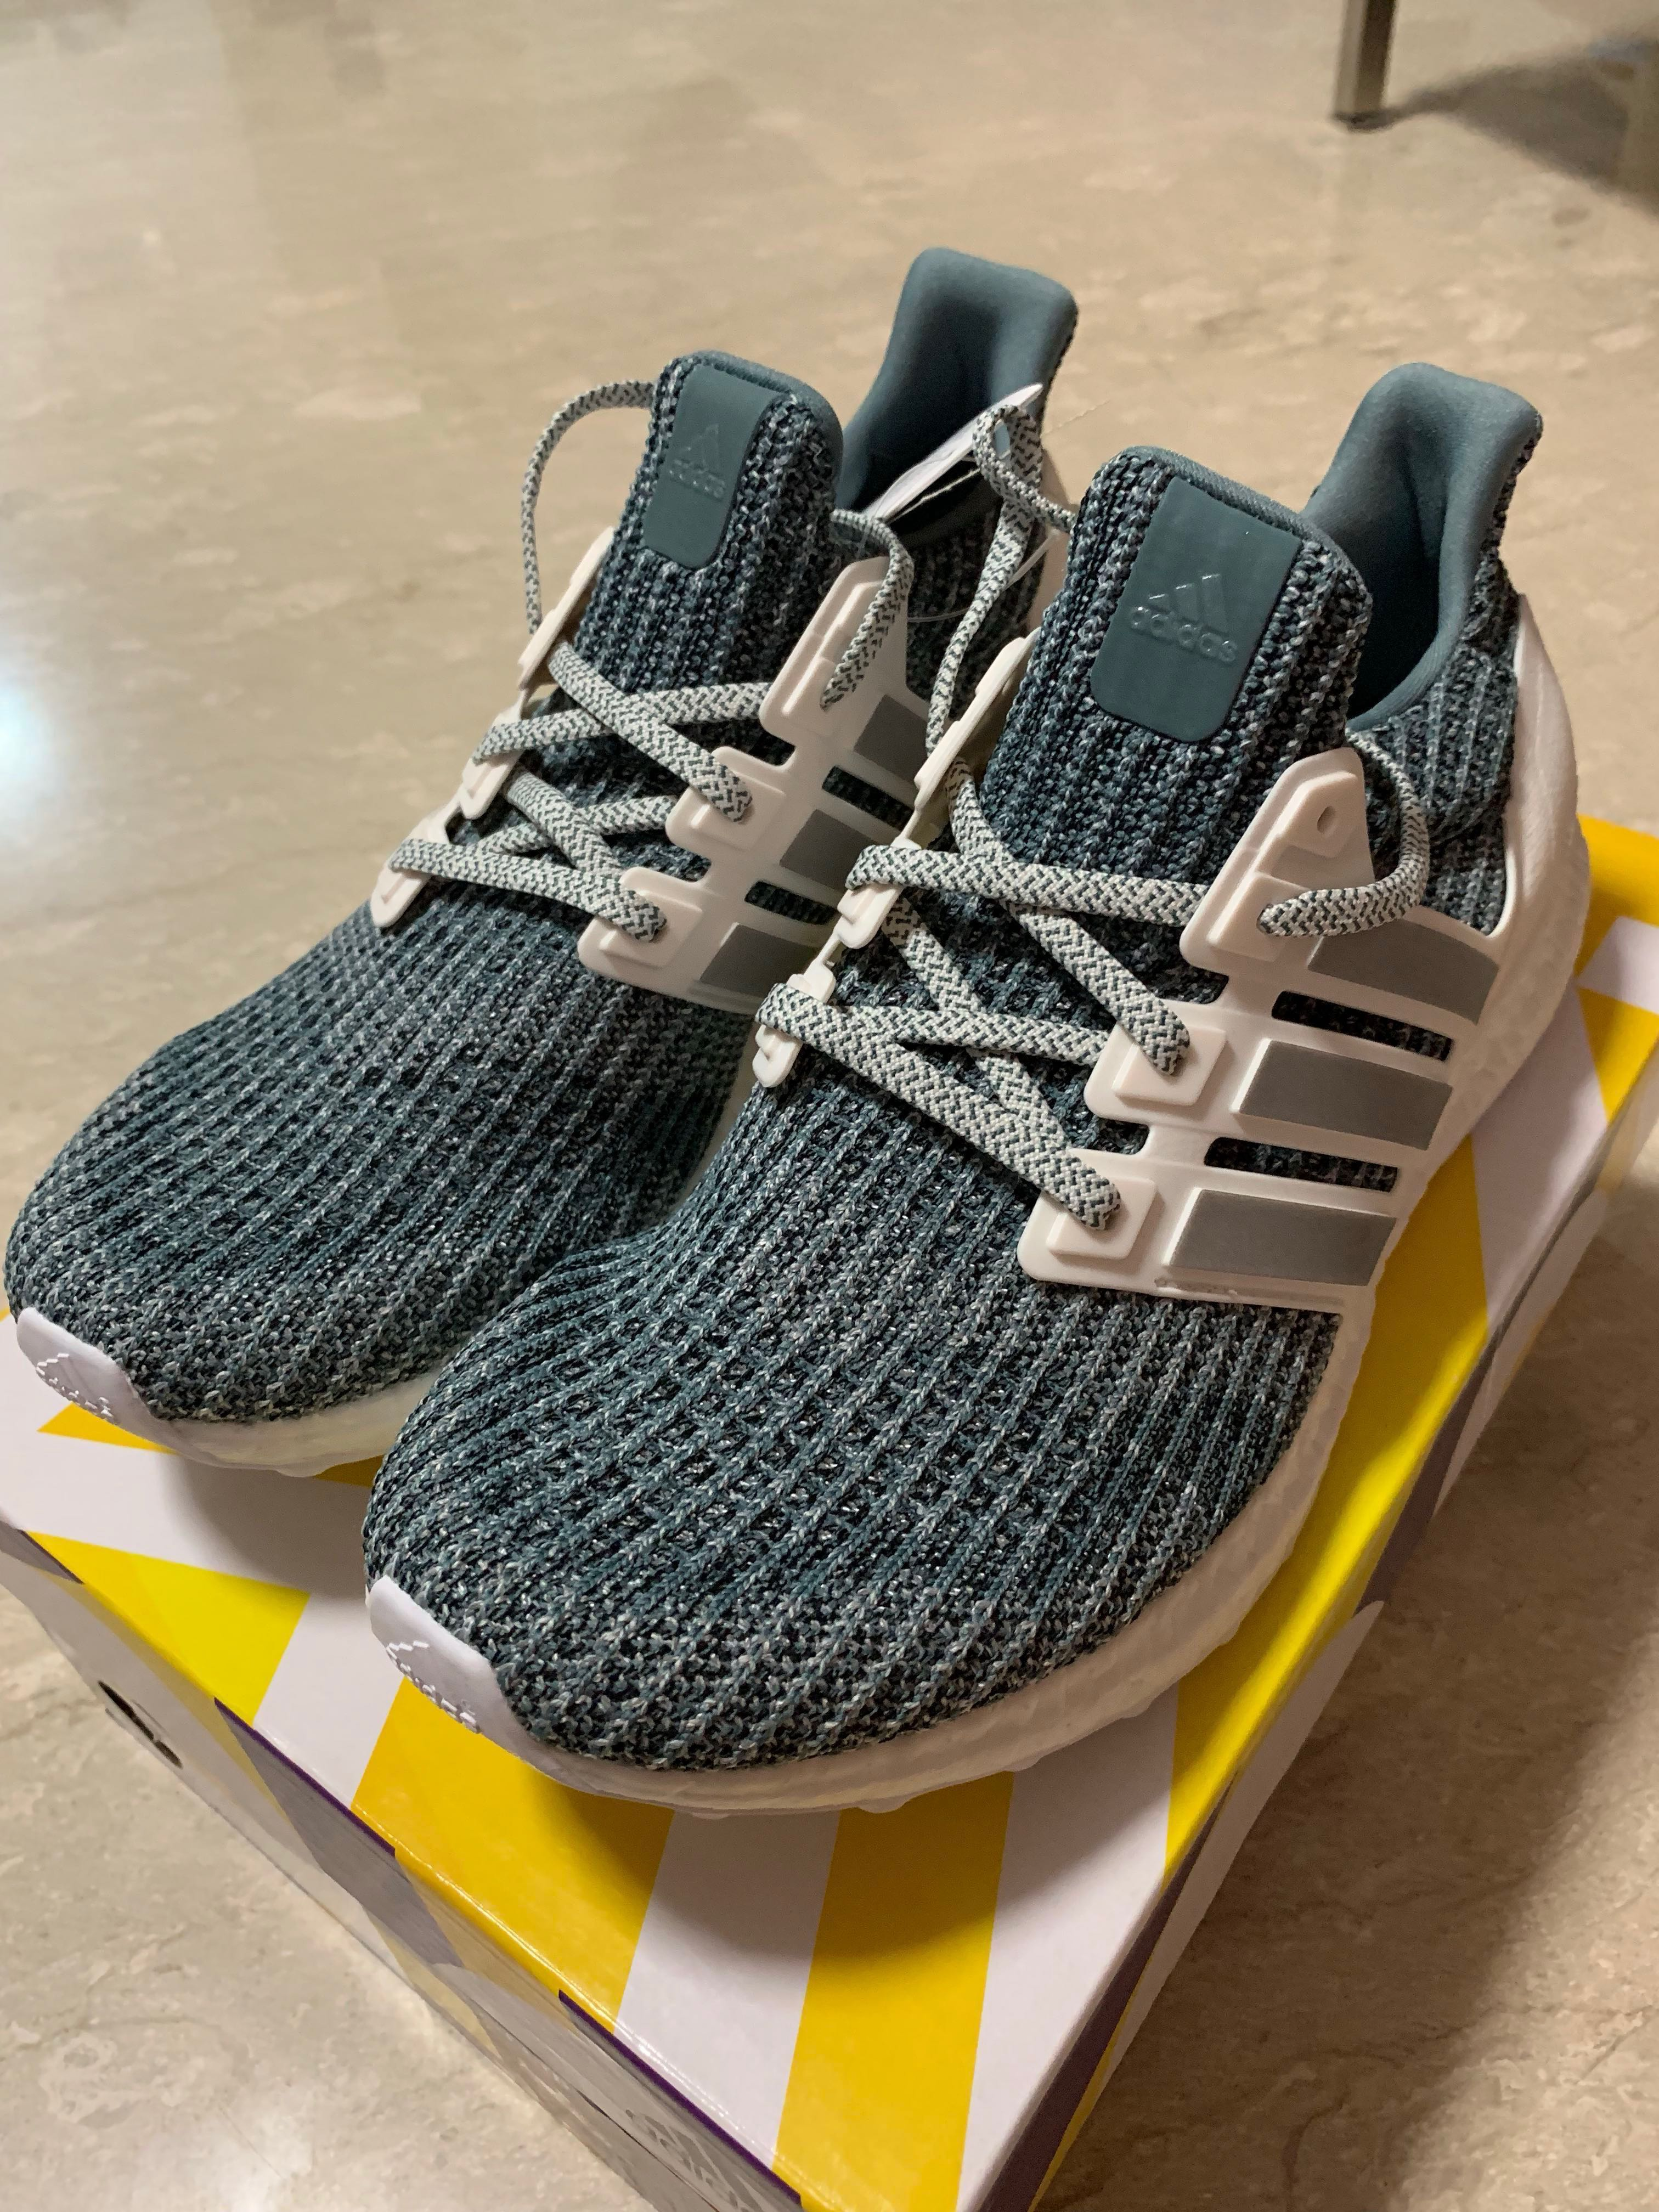 new arrivals 225b8 eb399 Adidas Ultra Boost LTD - Cloud White Silver, Men s Fashion, Footwear,  Sneakers on Carousell